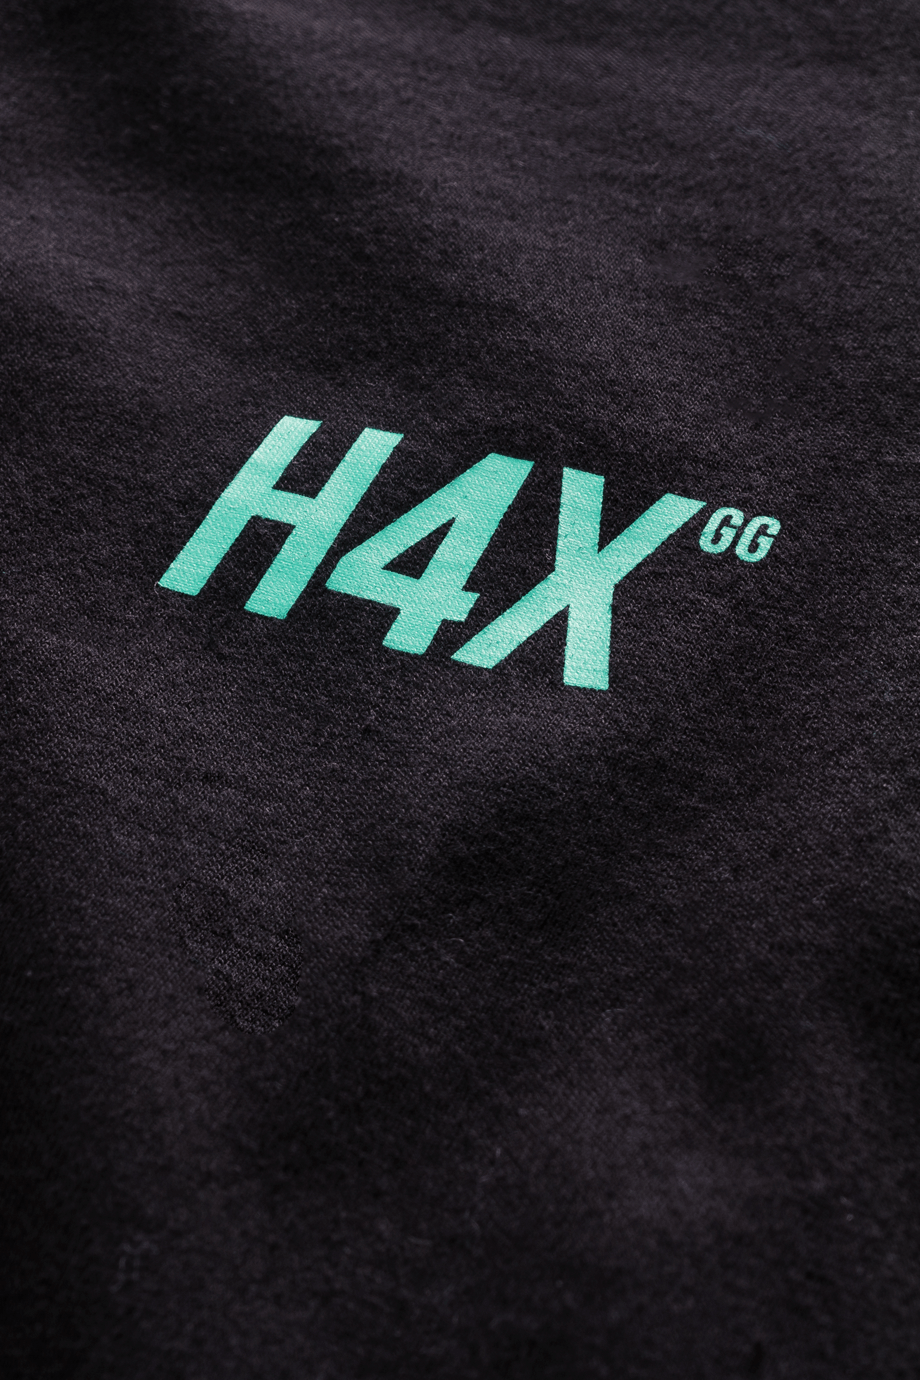 H4X Grid Long Sleeve Tee details